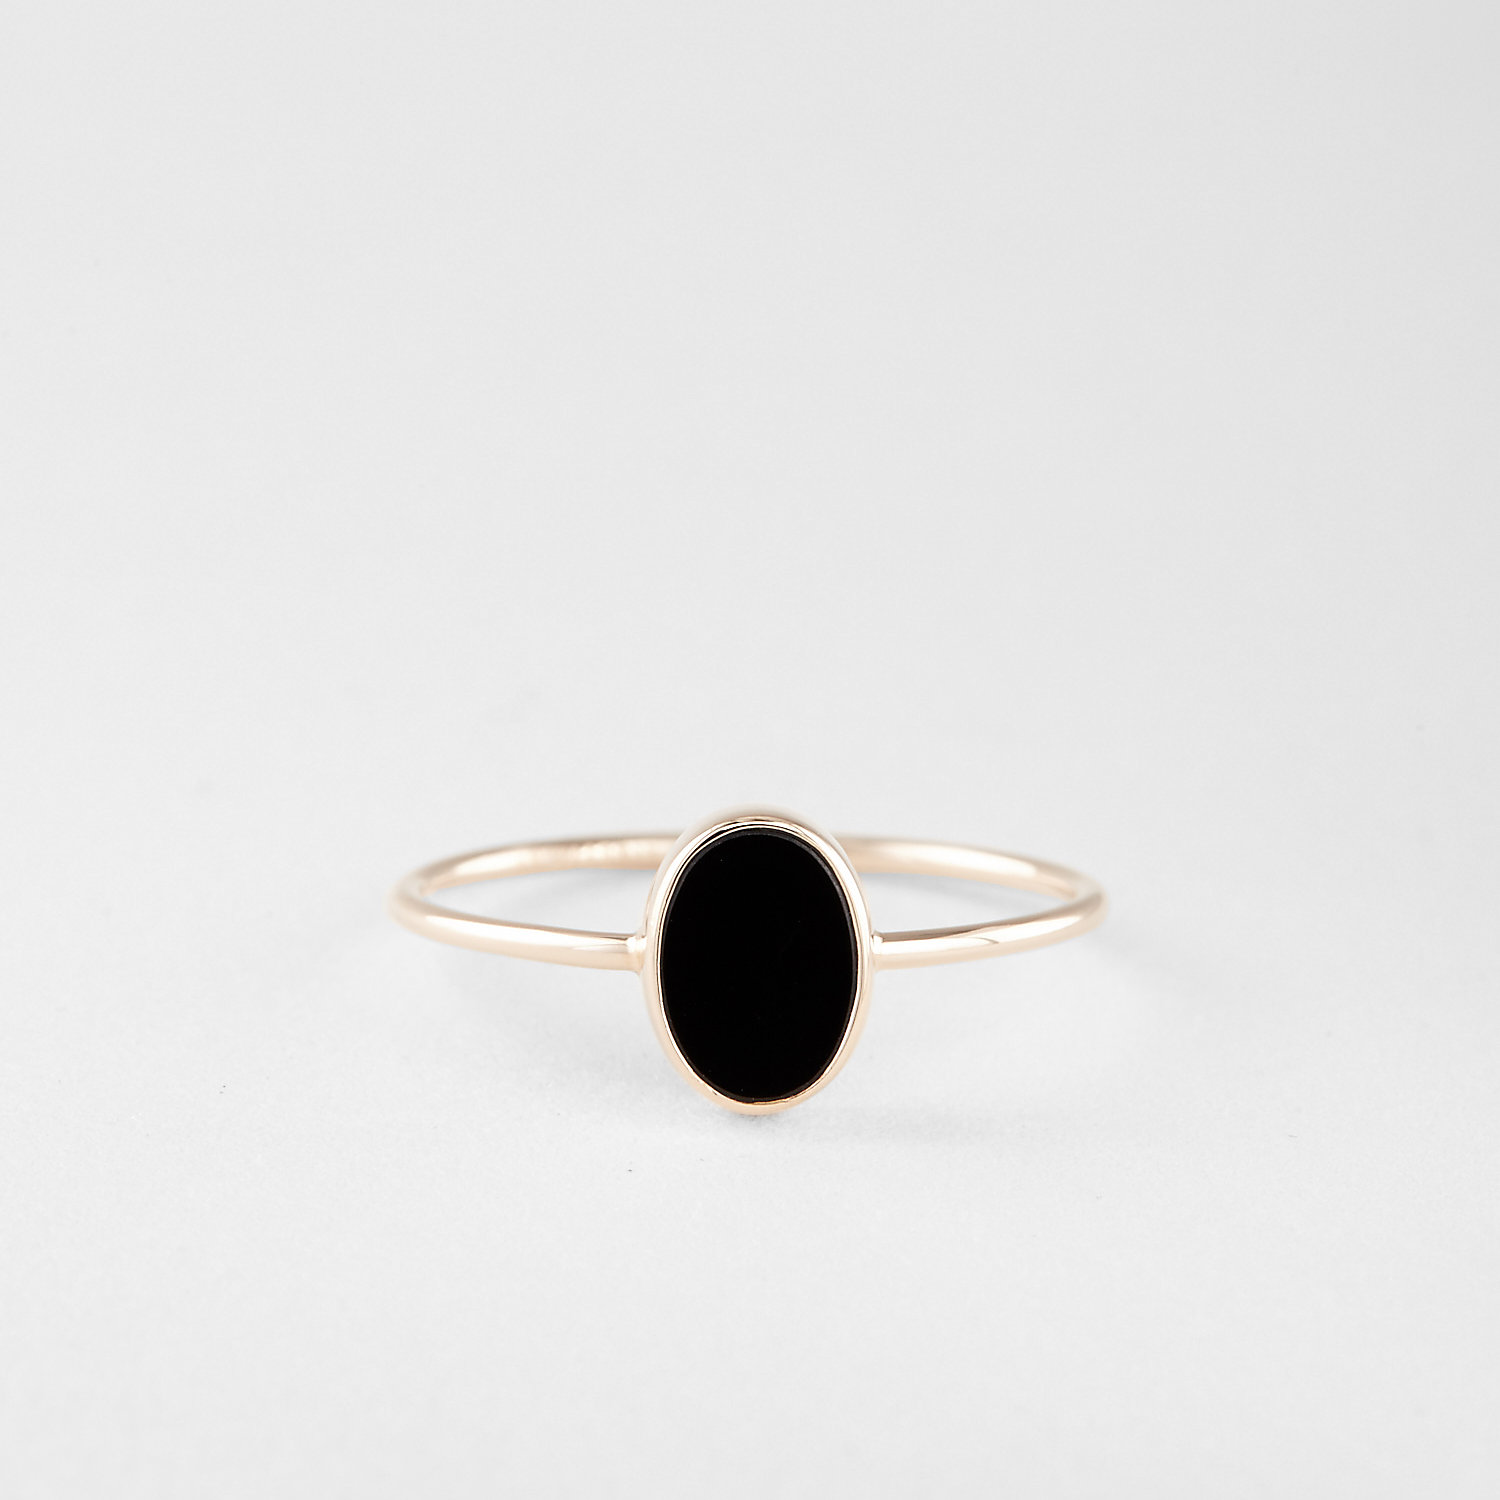 OVAL CABOCHON BLACK ONYX RING